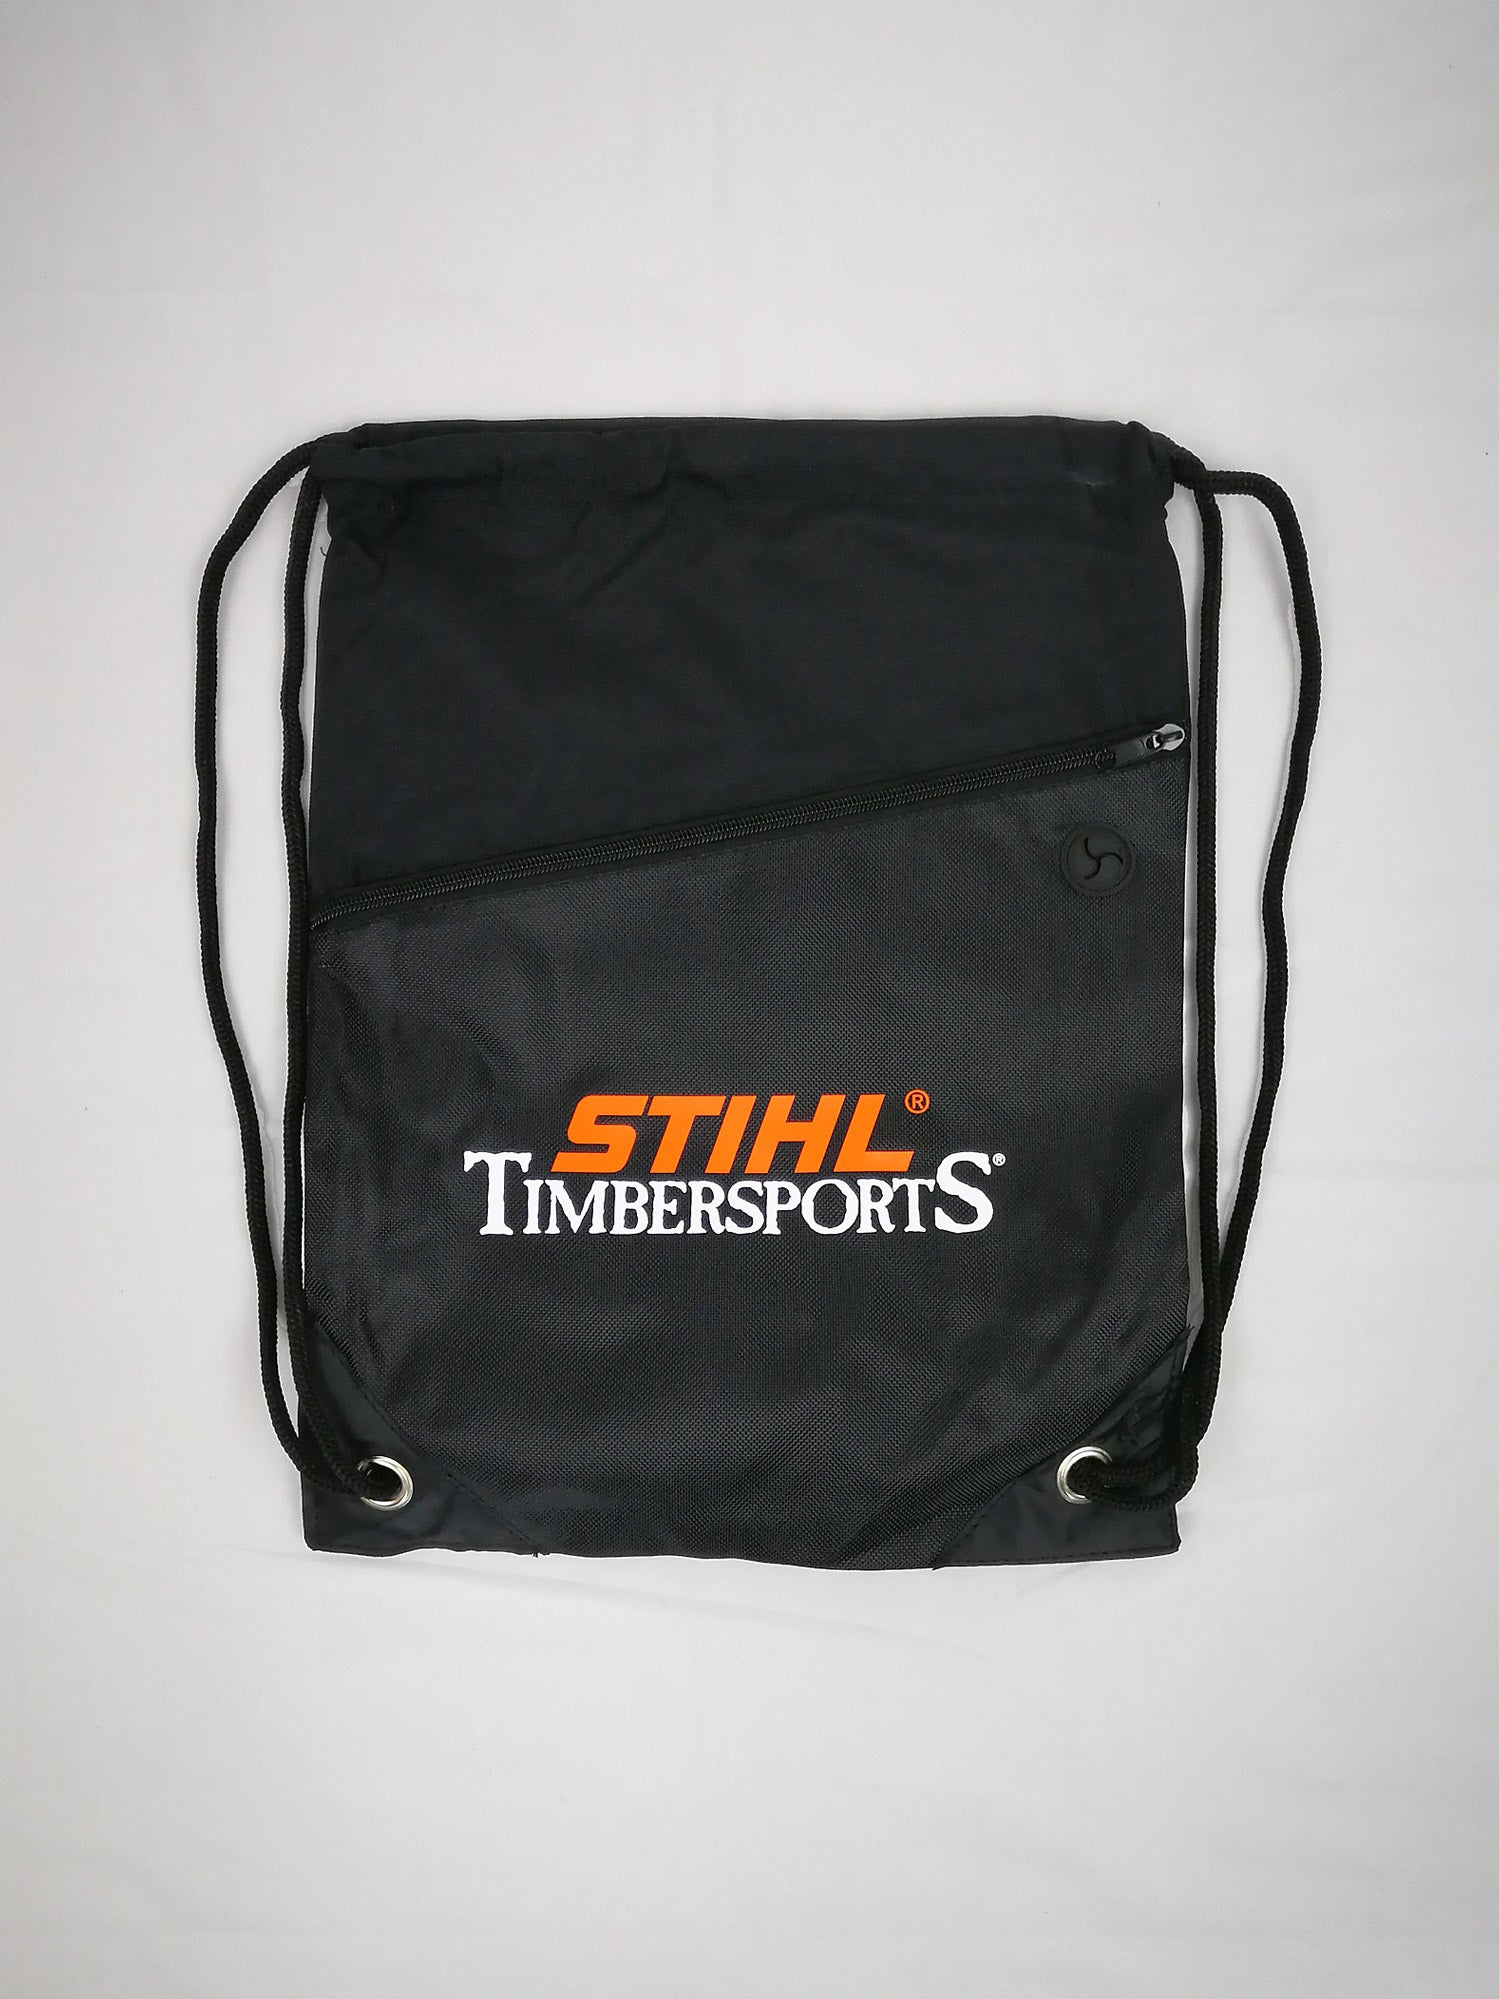 STIHL TIMBERSPORTS Cinch Bag